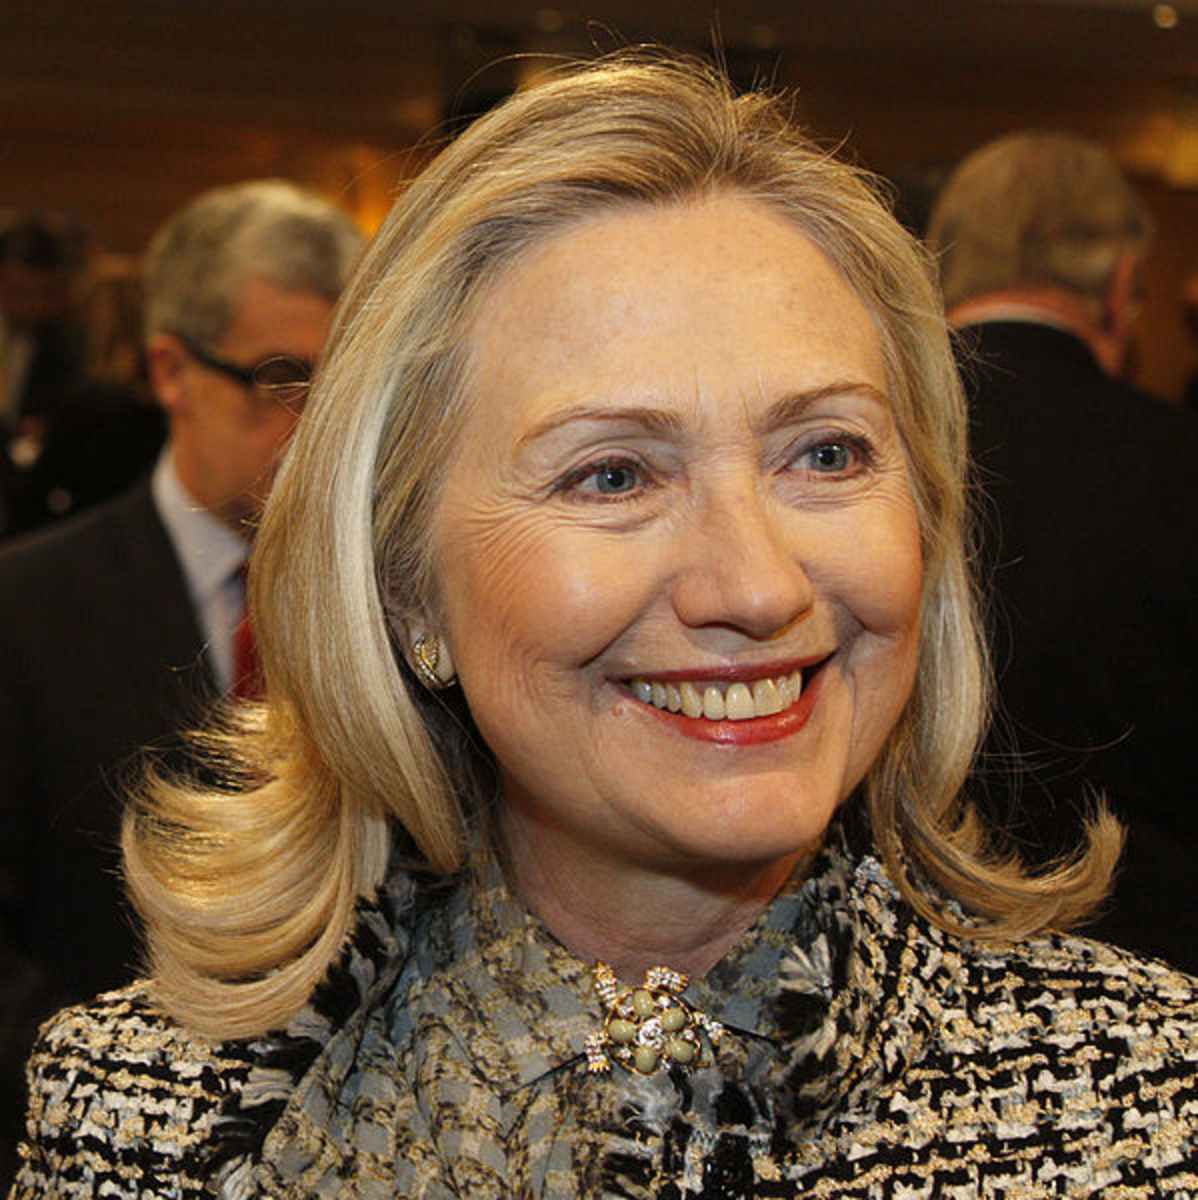 Clinton in 2012